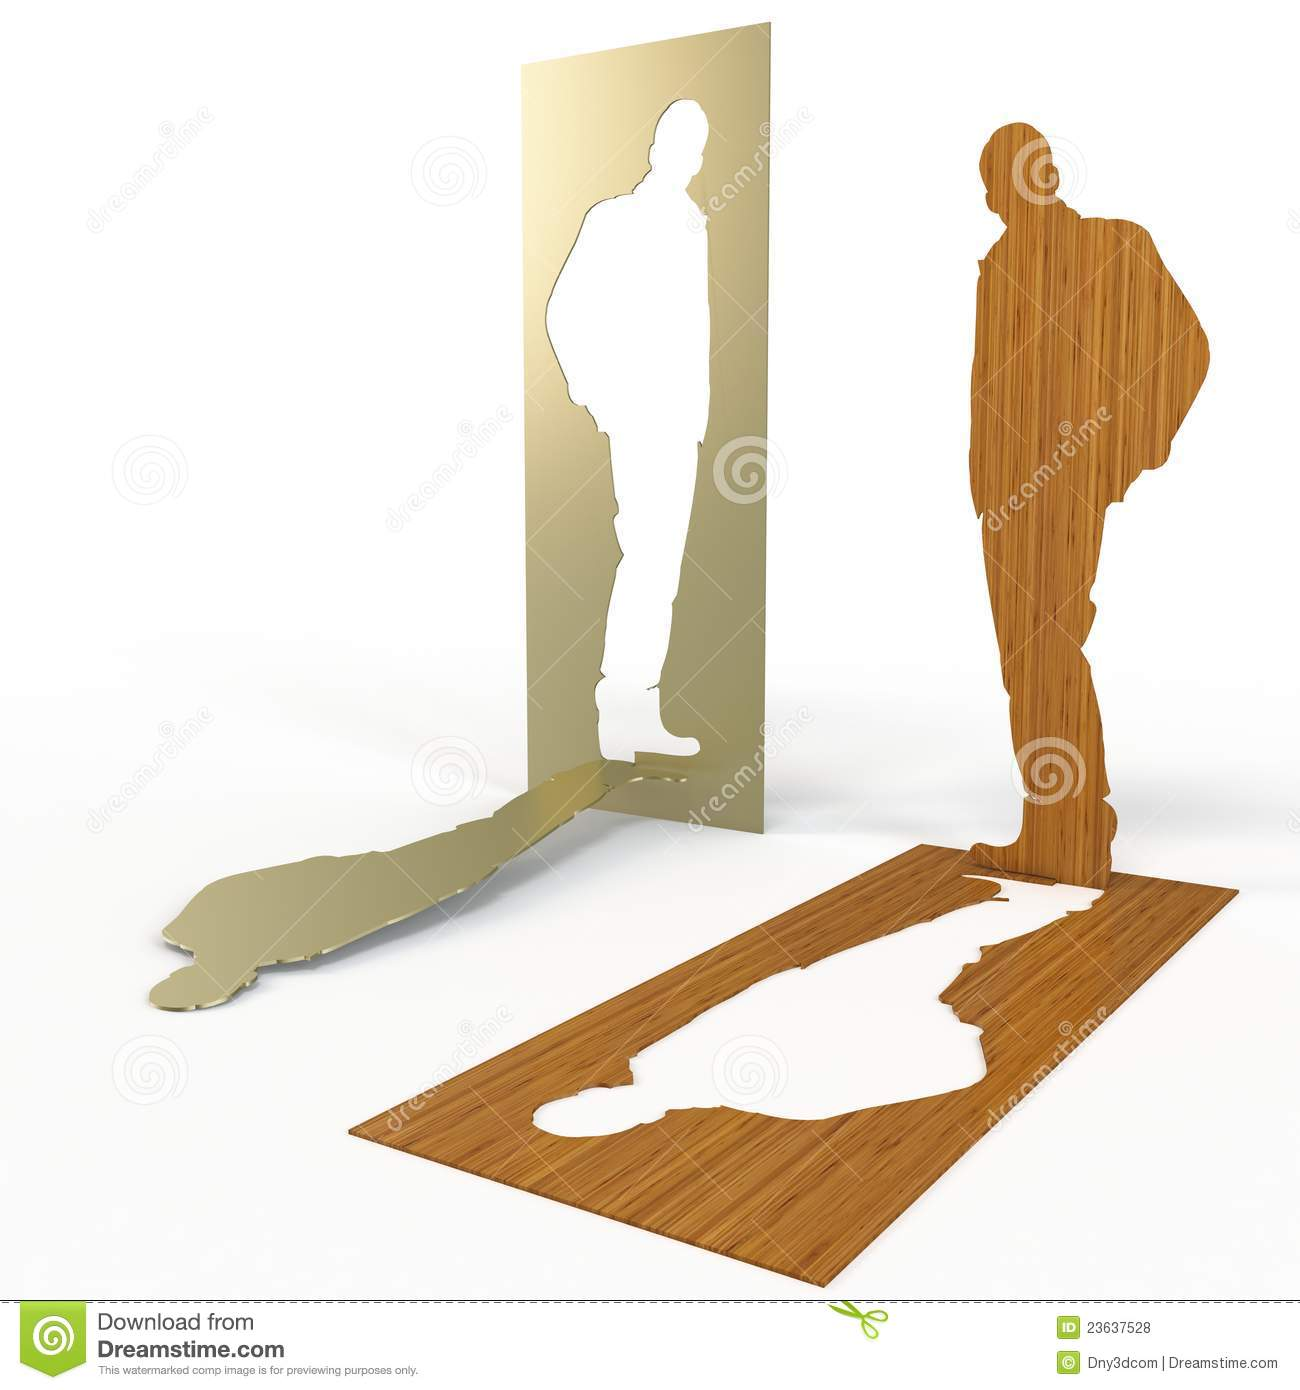 3d Cut Out Shapes Made On Wood And Metal Stock